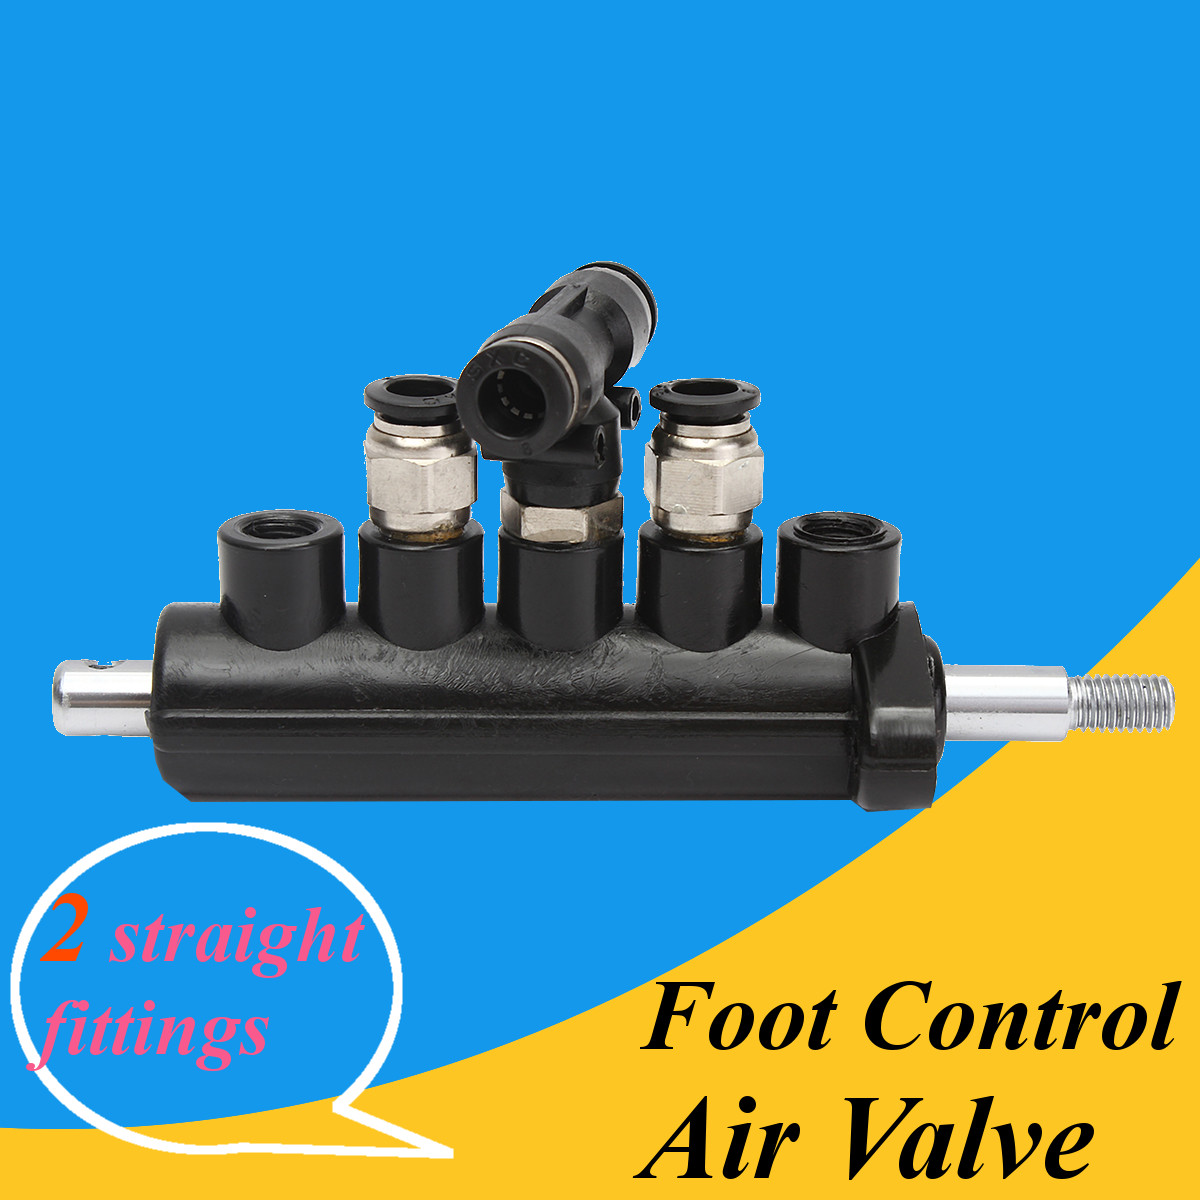 Air Control Valve Foot Pedal Valve For Ranger Eagle Tire Changer Machine R850